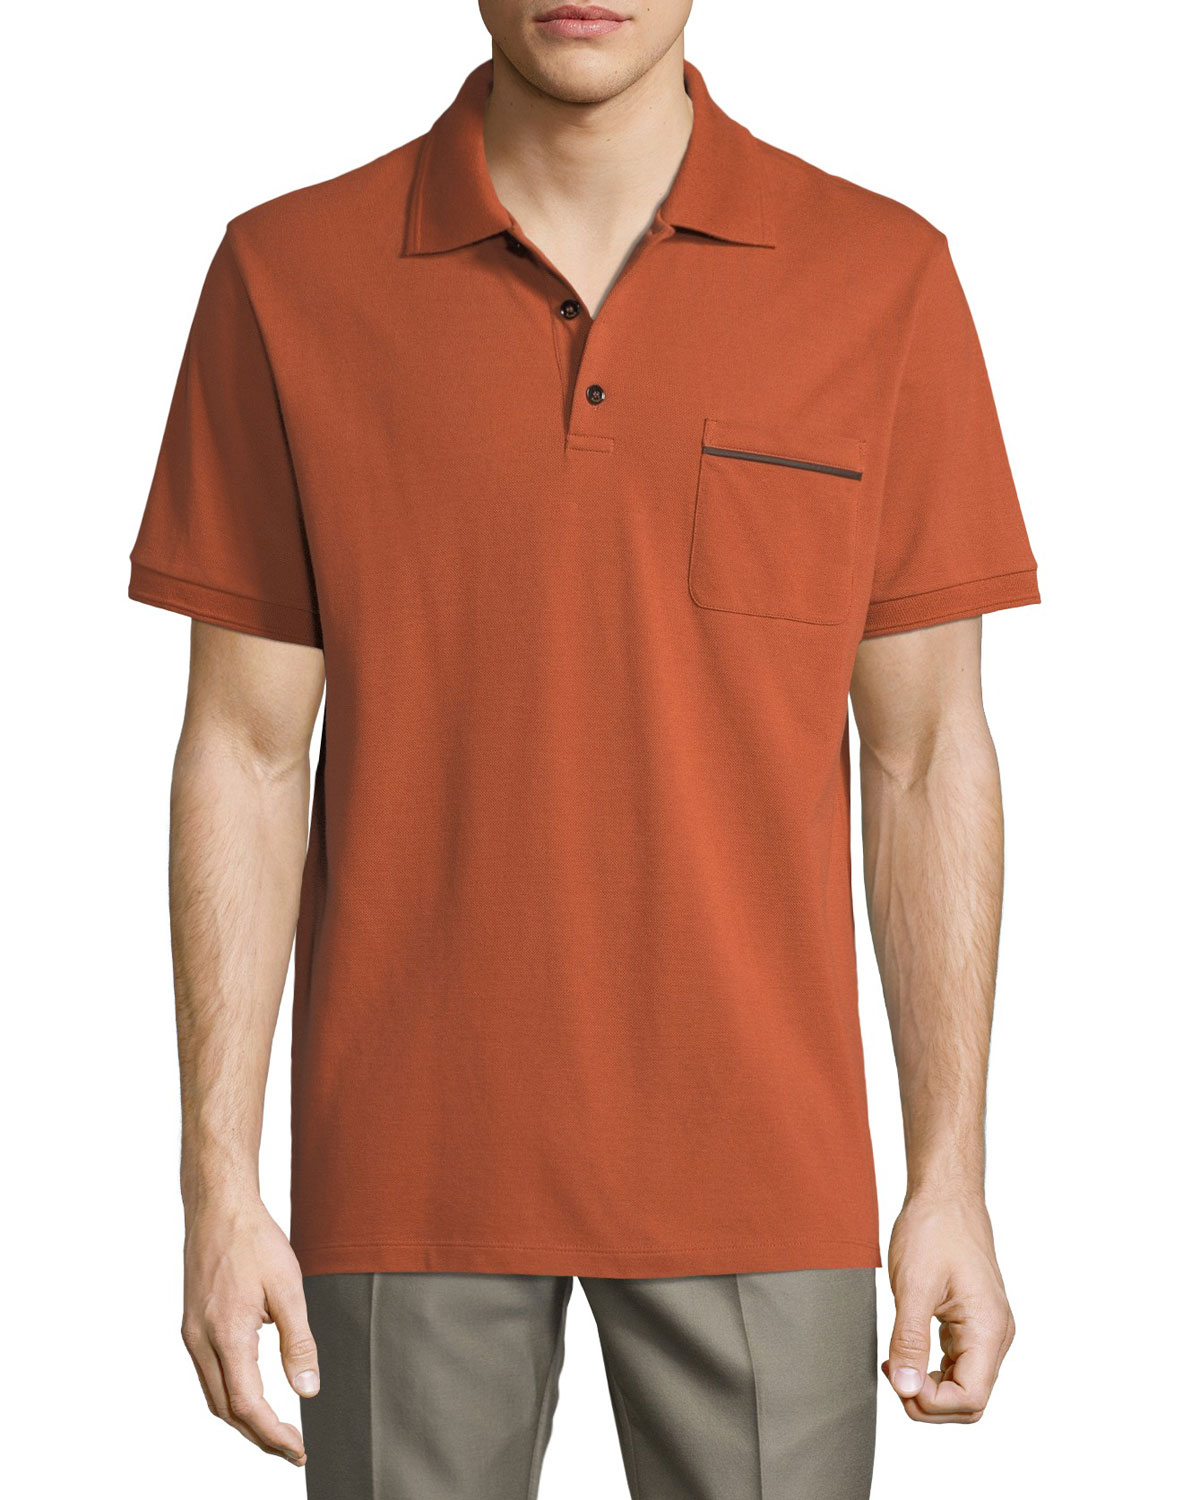 Berluti POLO SHIRT WITH LEATHER DETAIL